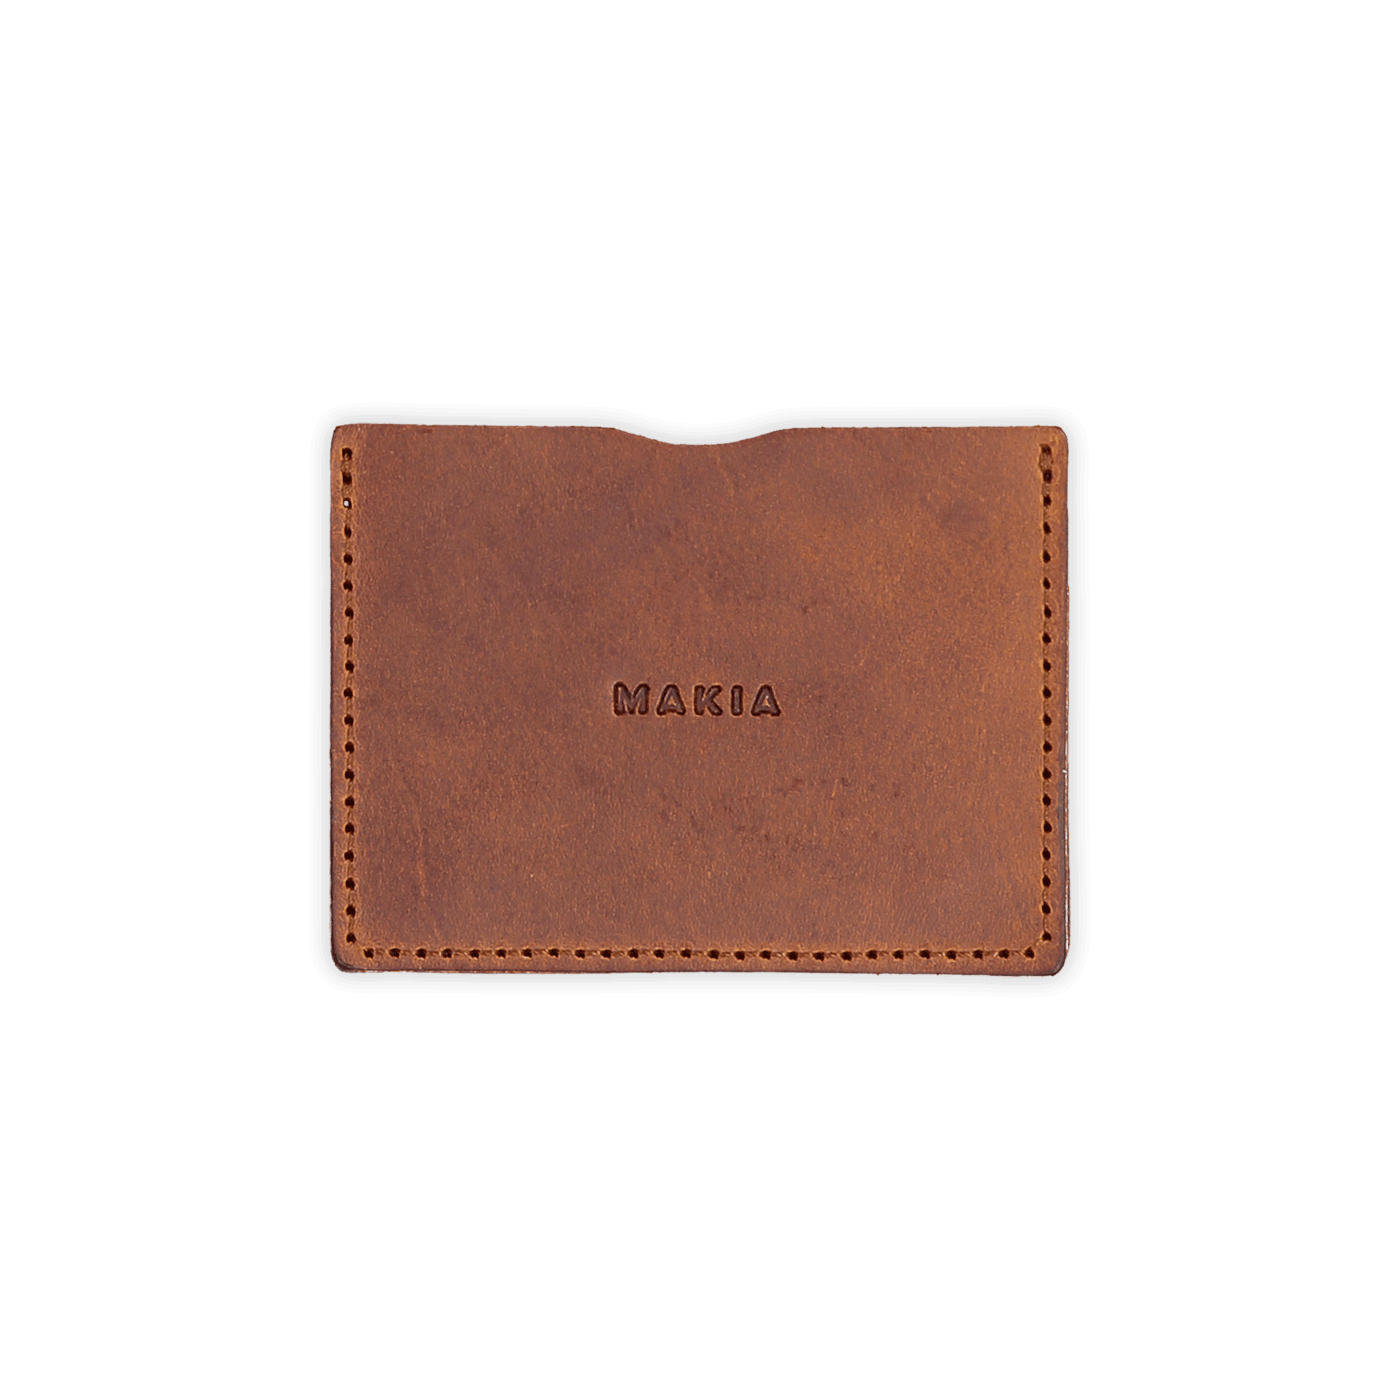 Mark card holder